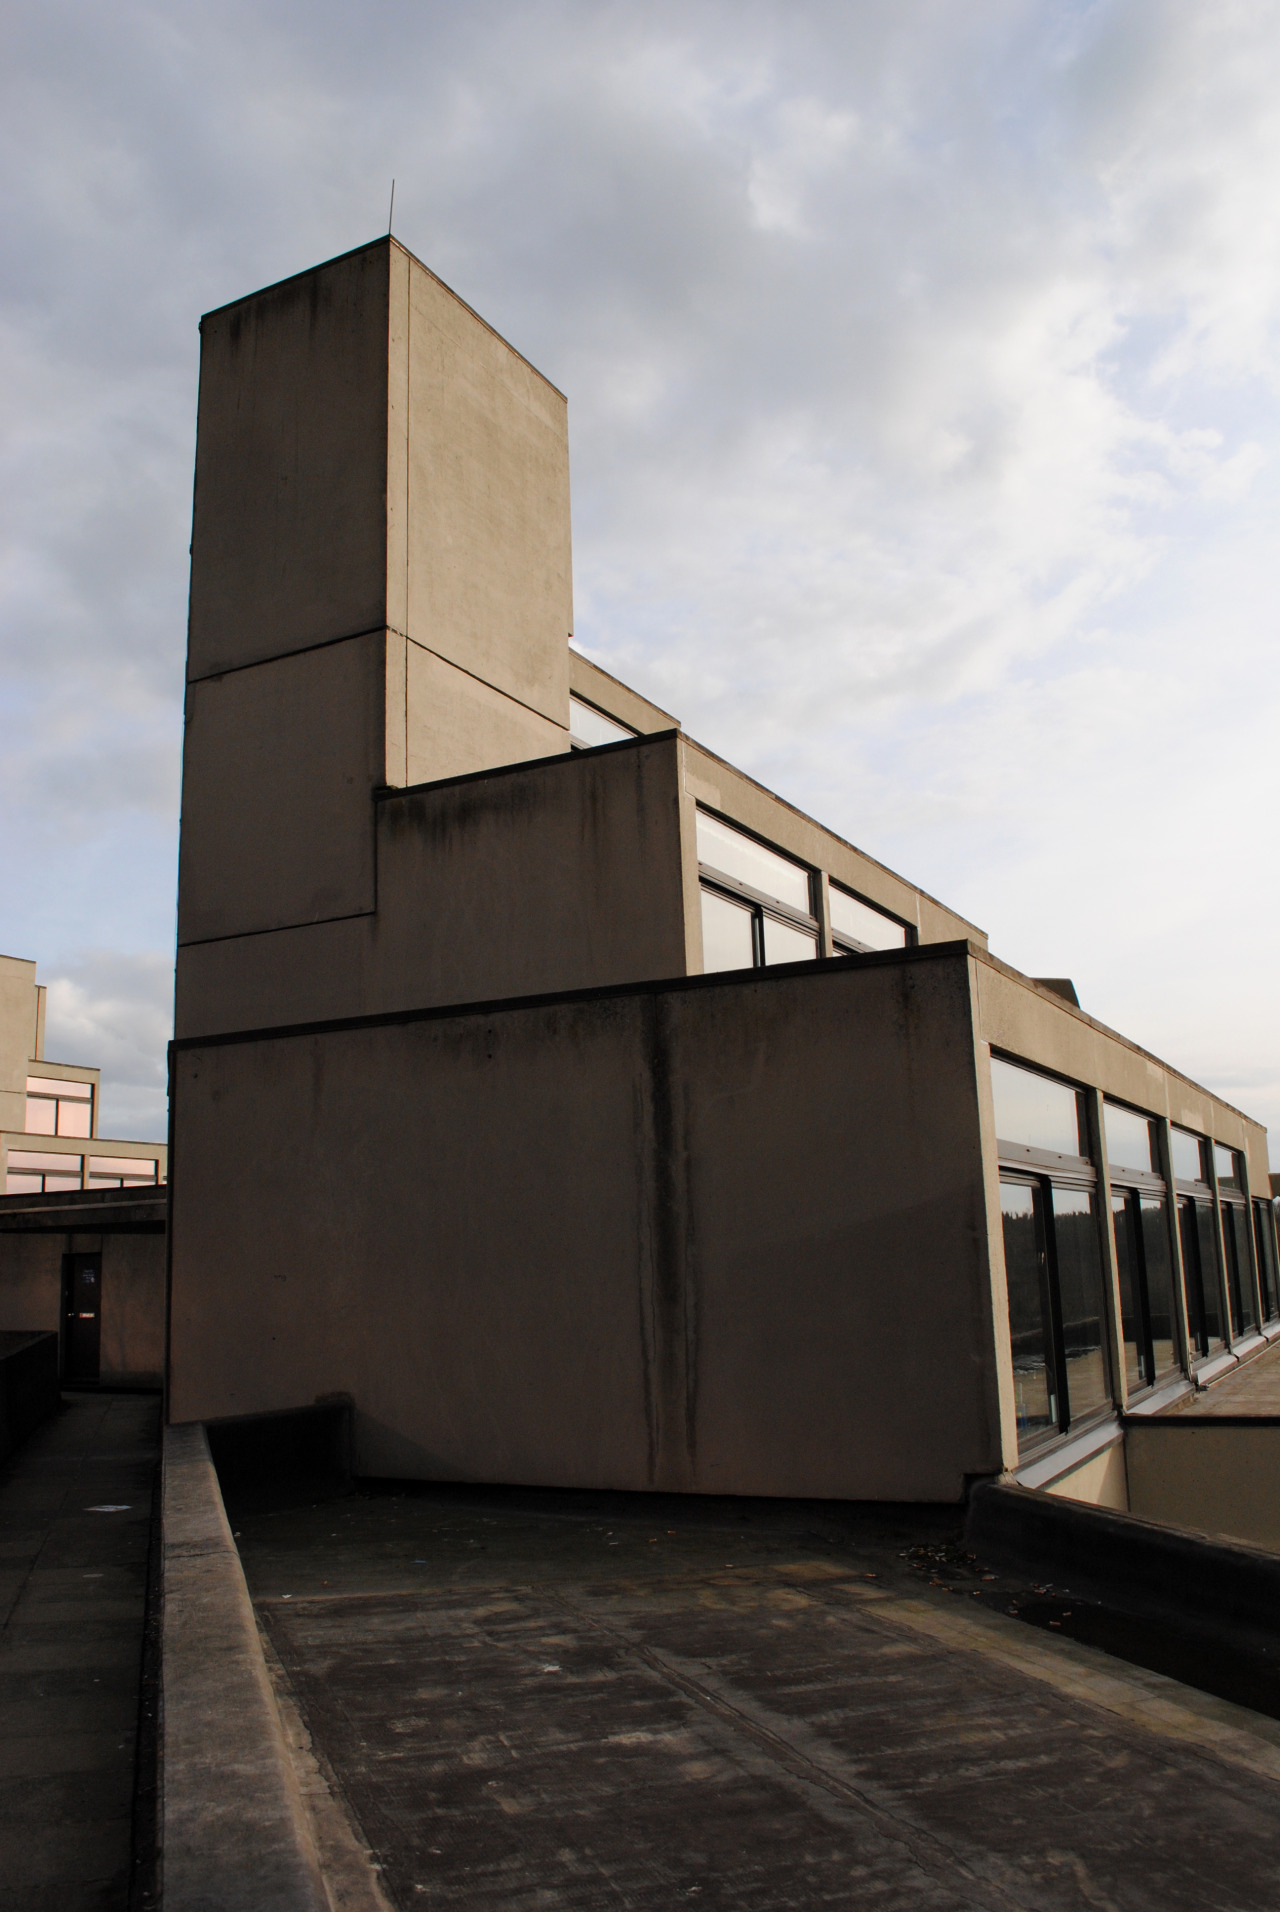 University of East Anglia, Denys Lasdun architecture. View this on the map